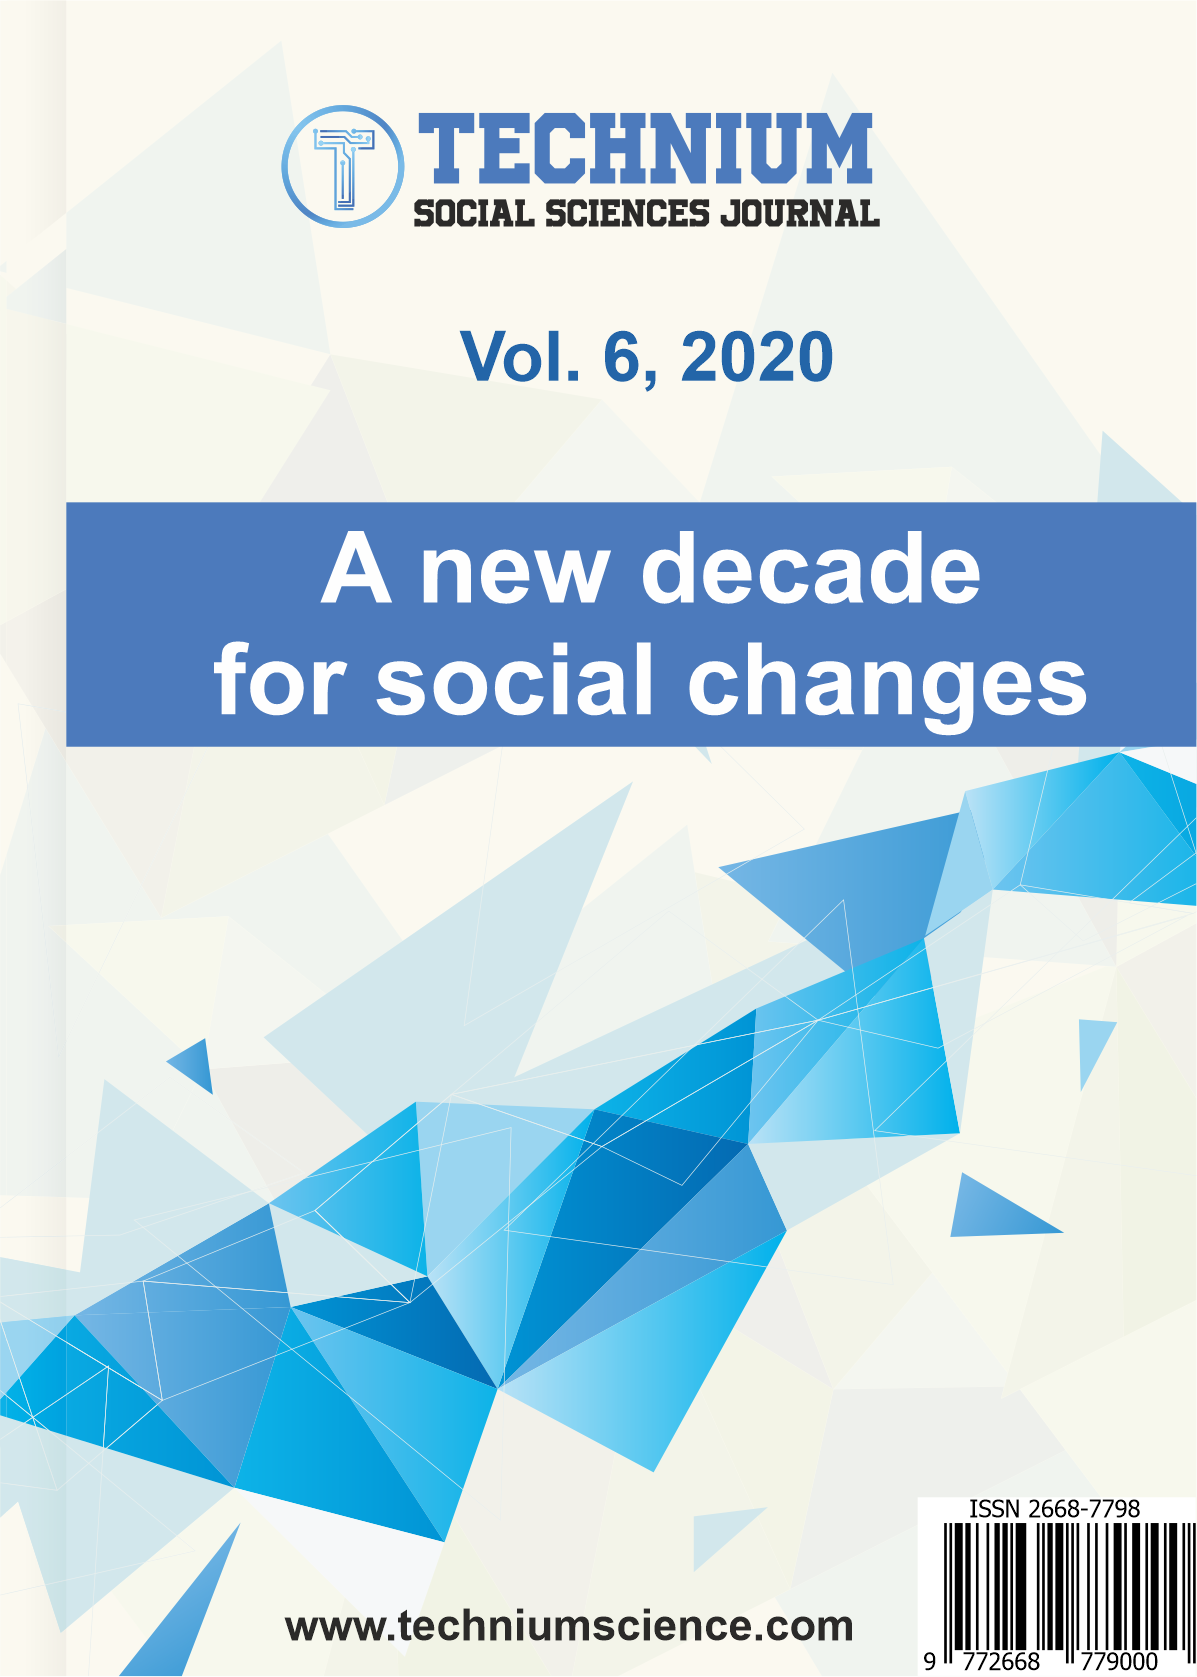 View Vol. 6 (2020): A new decade for social changes